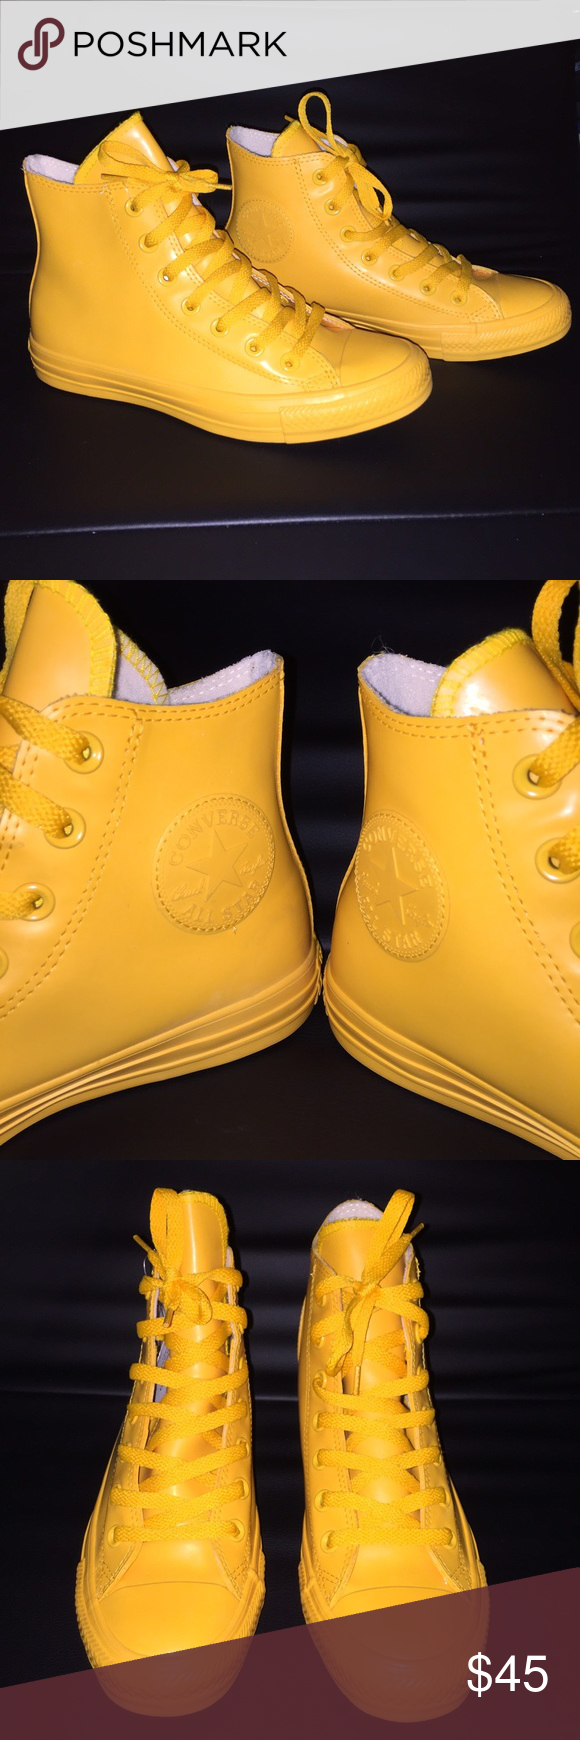 f27b9fd31f5 Converse All Stars Wild Honey Rubber High Tops New without tags or box.  These Converse